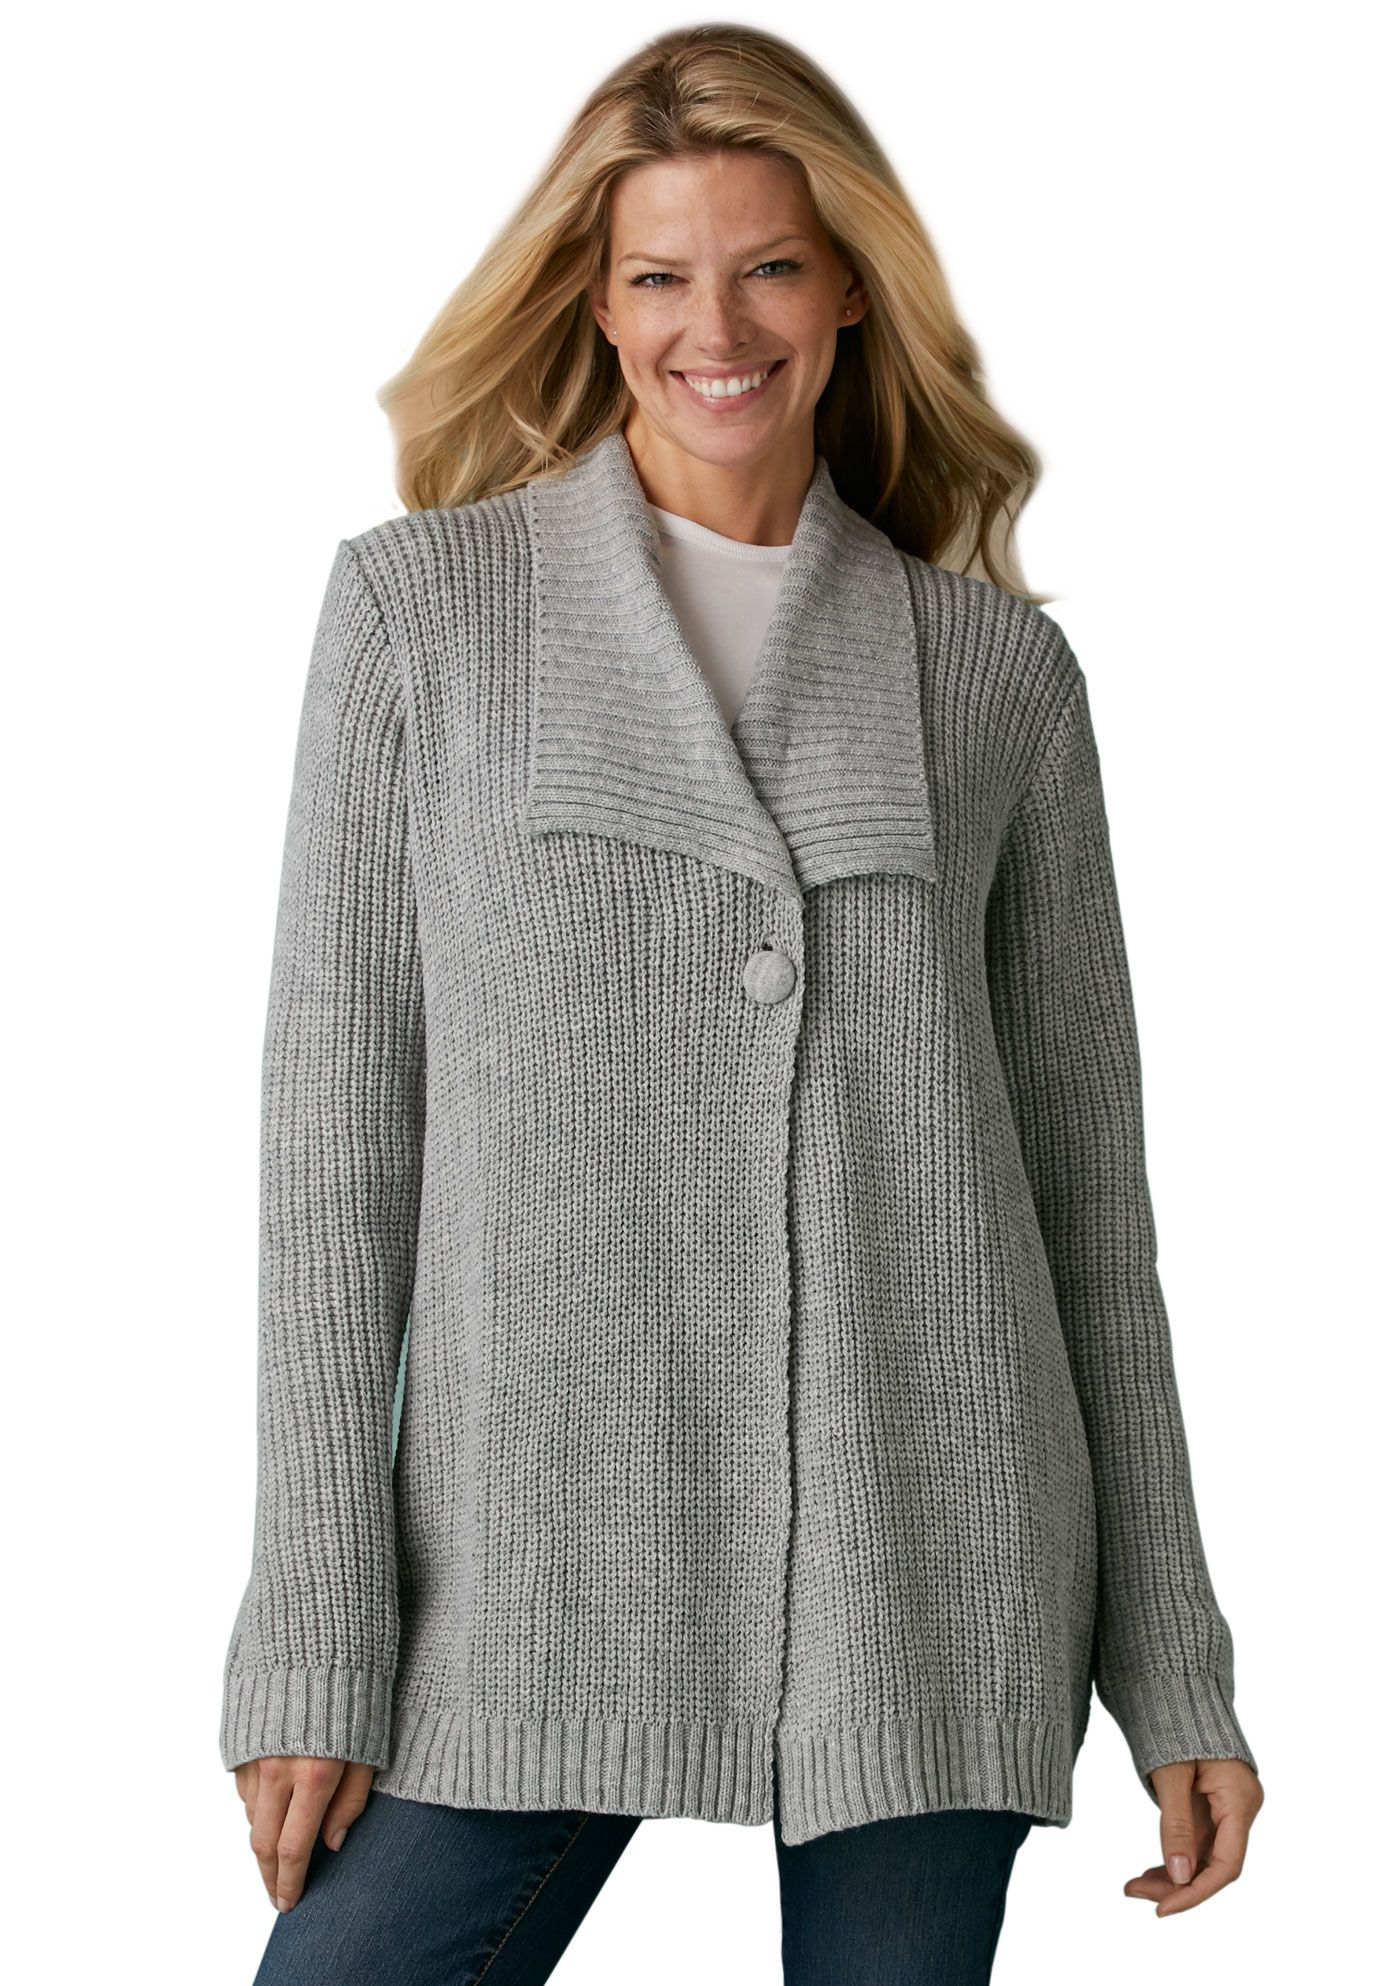 Sweater, cardigan style, in Shaker stitch with shawl collar | Plus ...